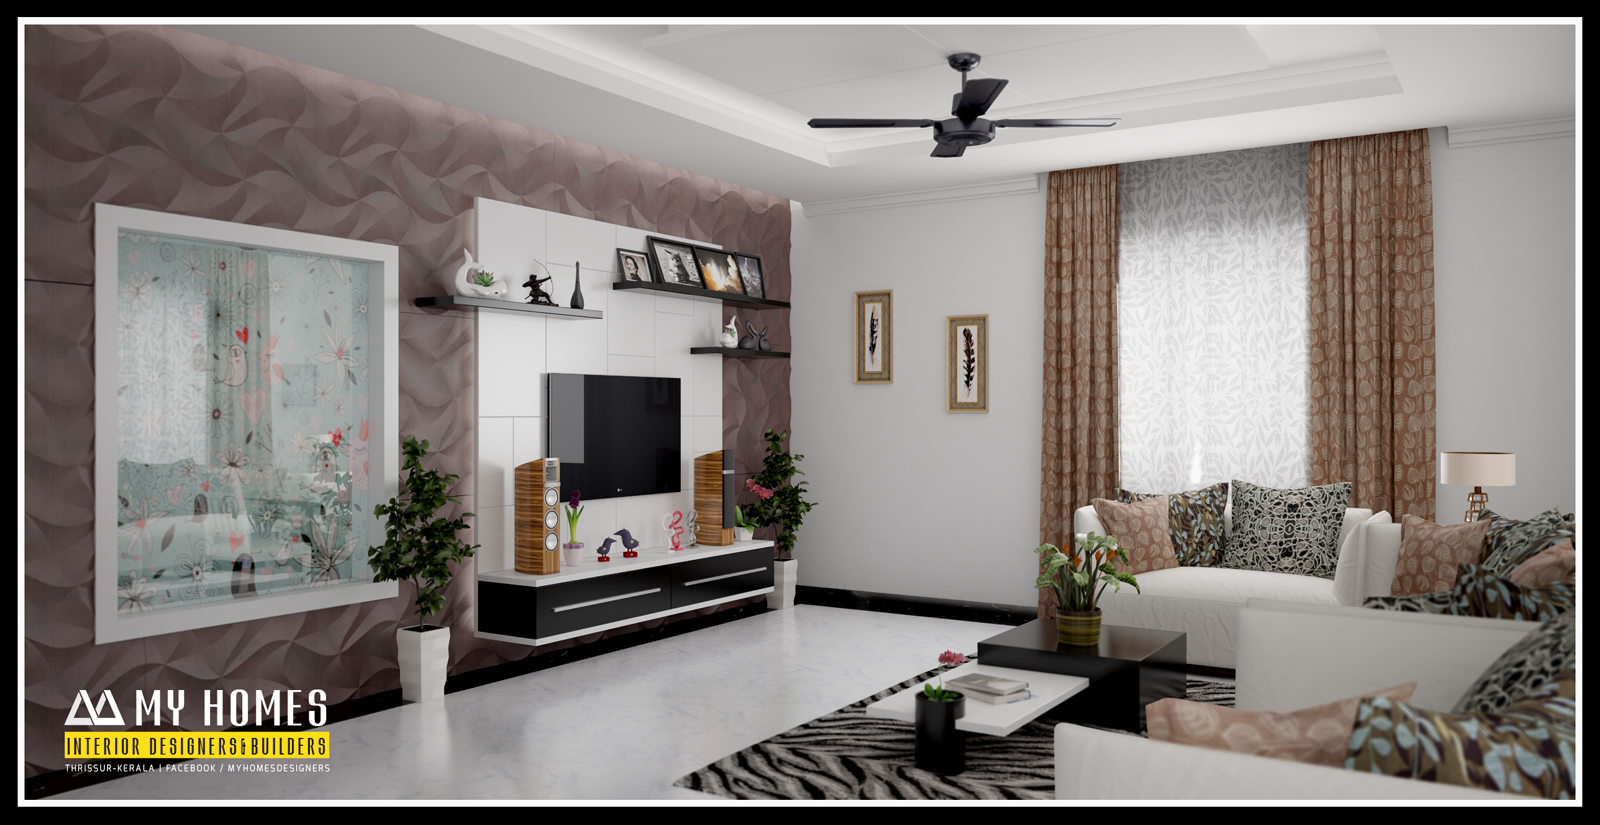 budget kerala home designers low budget house construction. Black Bedroom Furniture Sets. Home Design Ideas